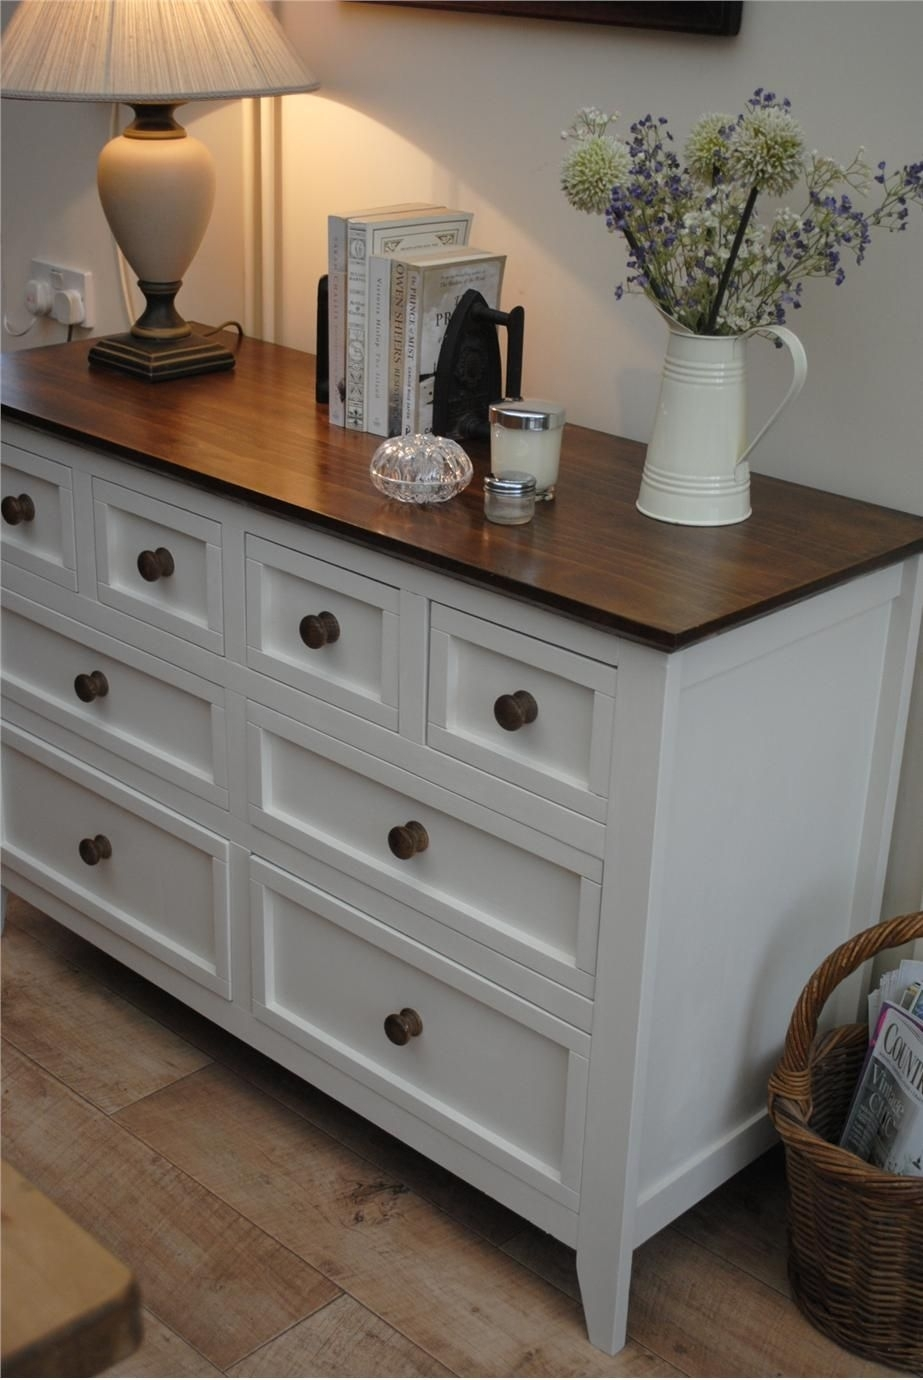 Or This – With Different Knobs And A White Or Grey Or Black Painted Intended For Most Up To Date Satin Black & Painted White Sideboards (View 5 of 20)